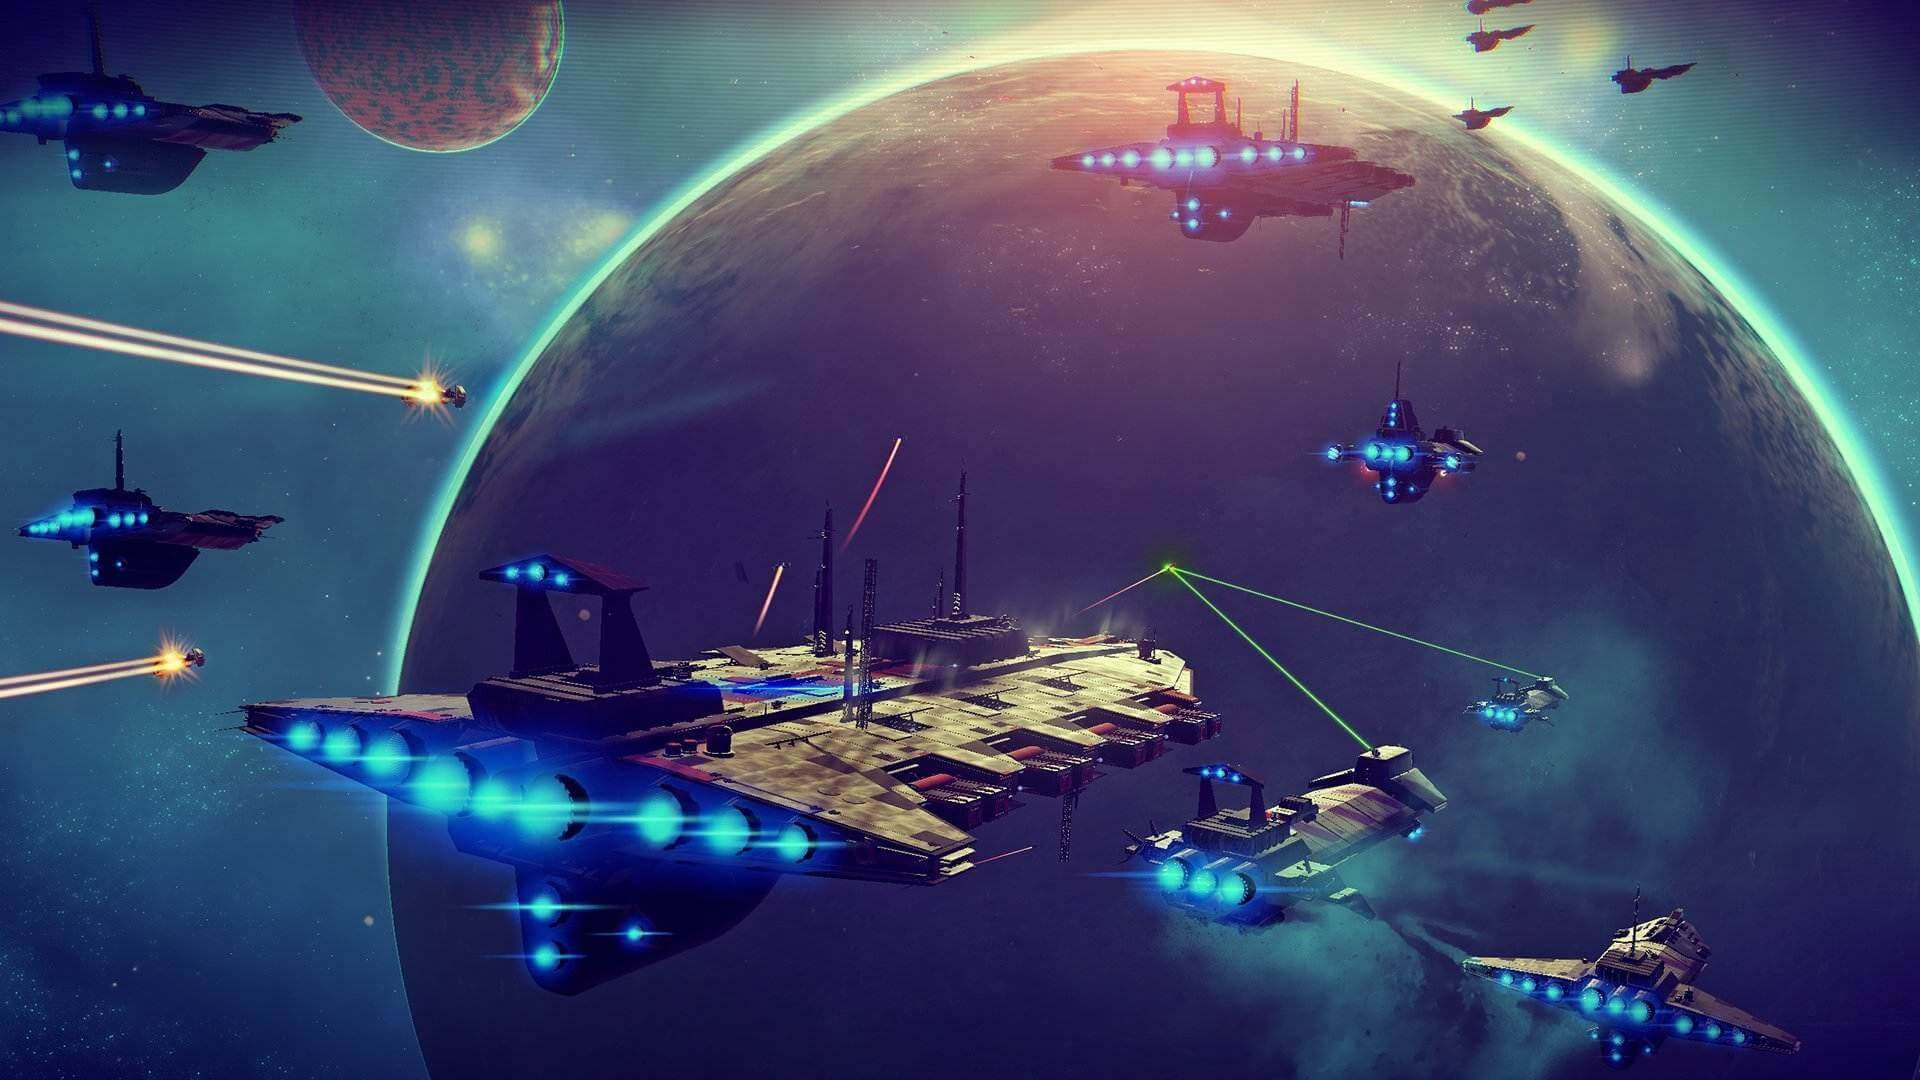 Nomad Squadron is a No Man's Sky fan film starring a little girl and a pro wrestler